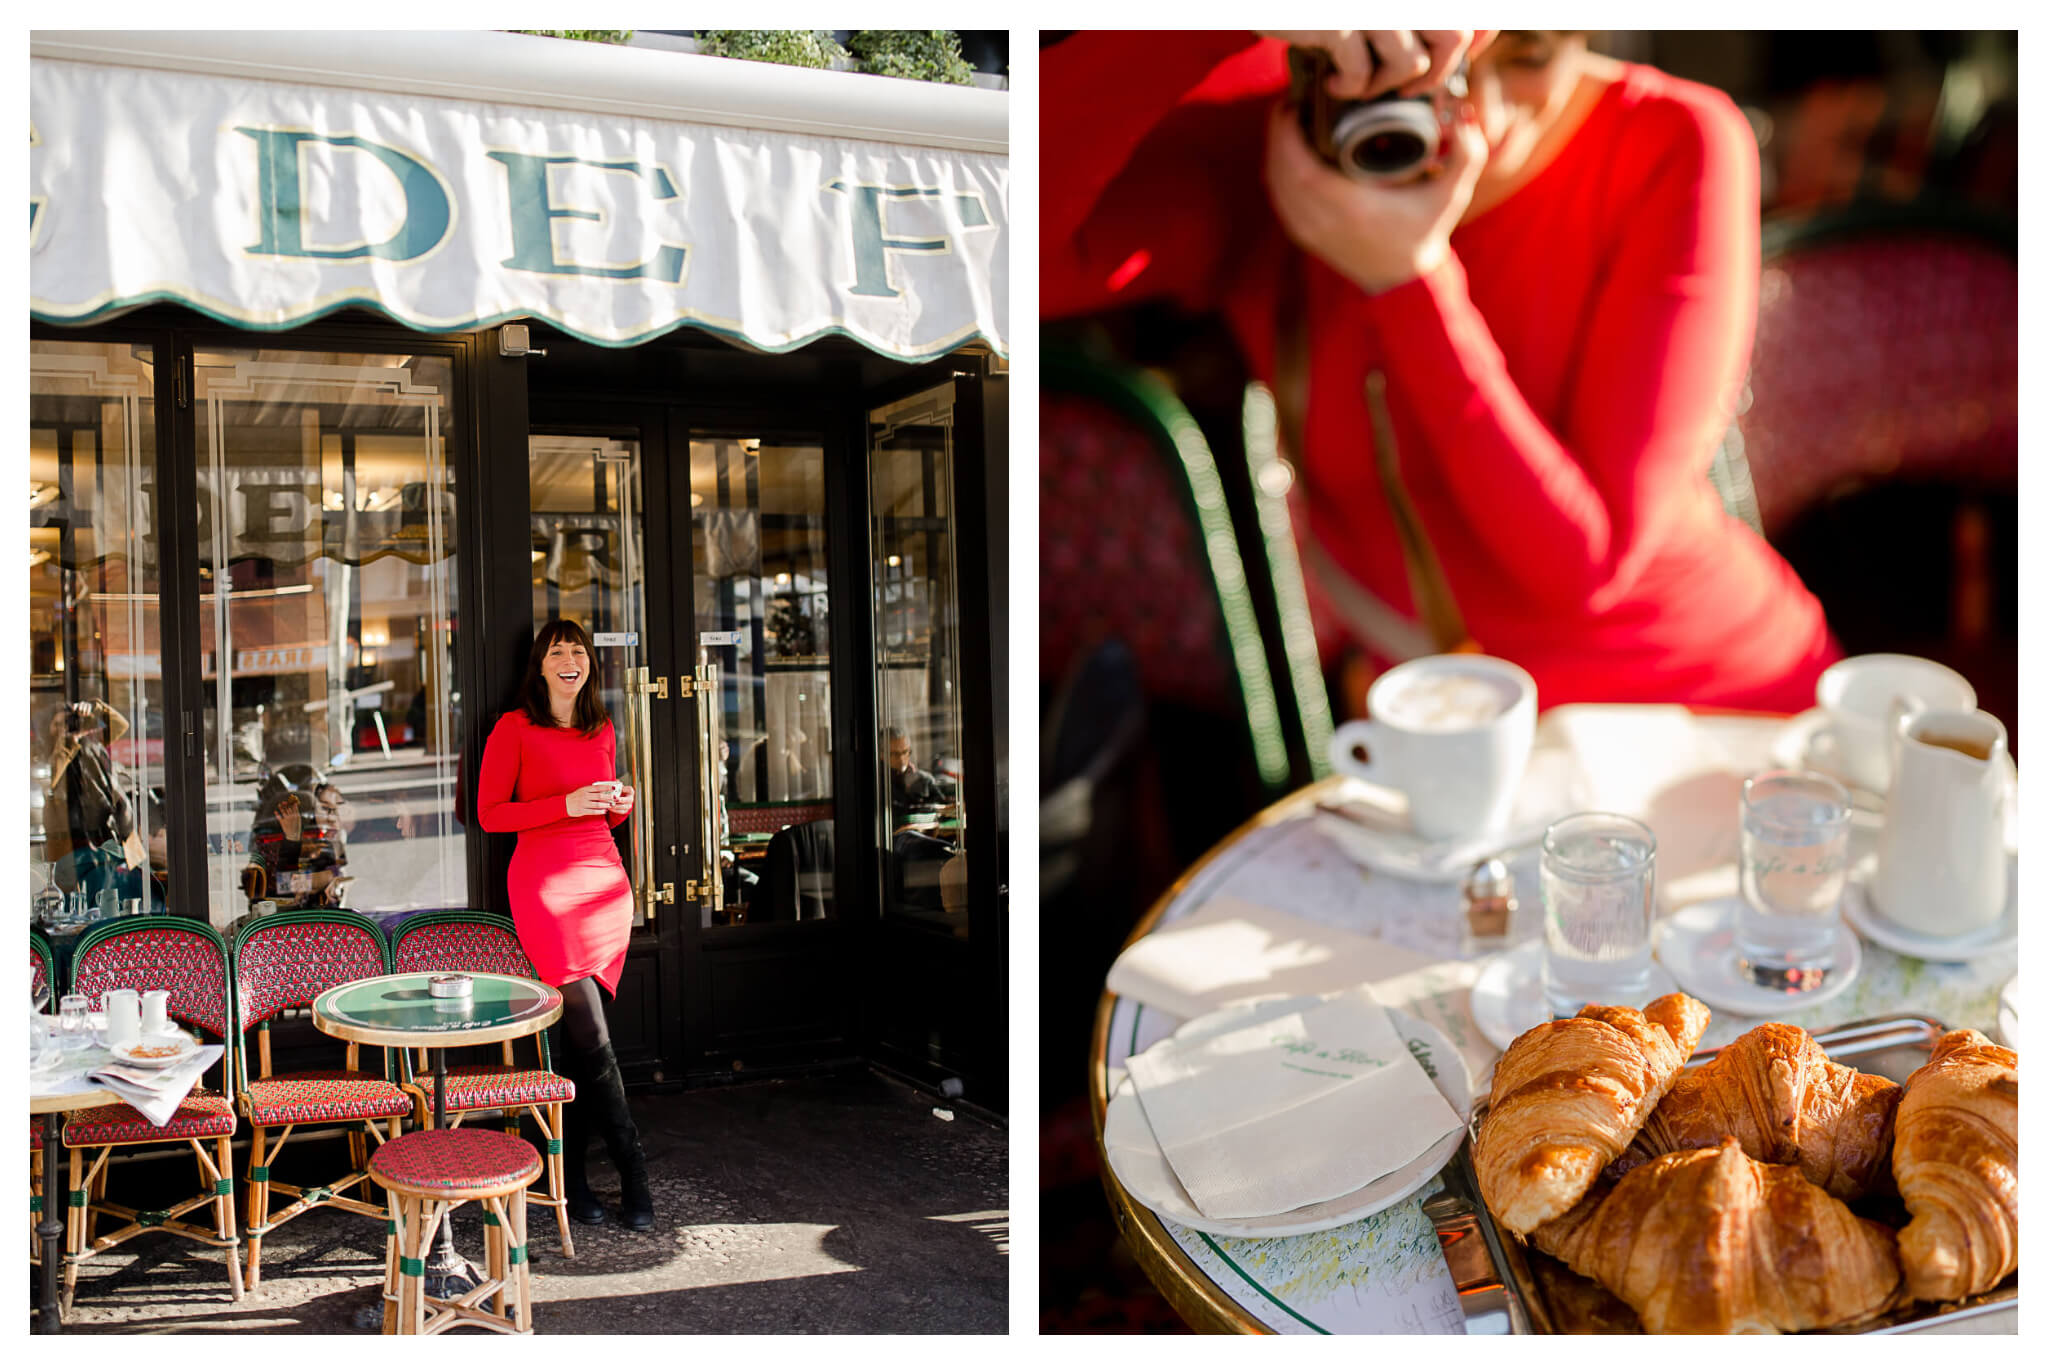 On left: Rebecca Plotnick, travel photographer and founder of the blog Everyday Parisian, smiles under the awning of one of her favorite cafés, Café de Flore, in Paris' Saint-Germain-des-Près neighborhood. on right: Rebecca snaps a photo on a vintage camera of a sumptuous spread of warm croissants and coffee at Café de Flore.